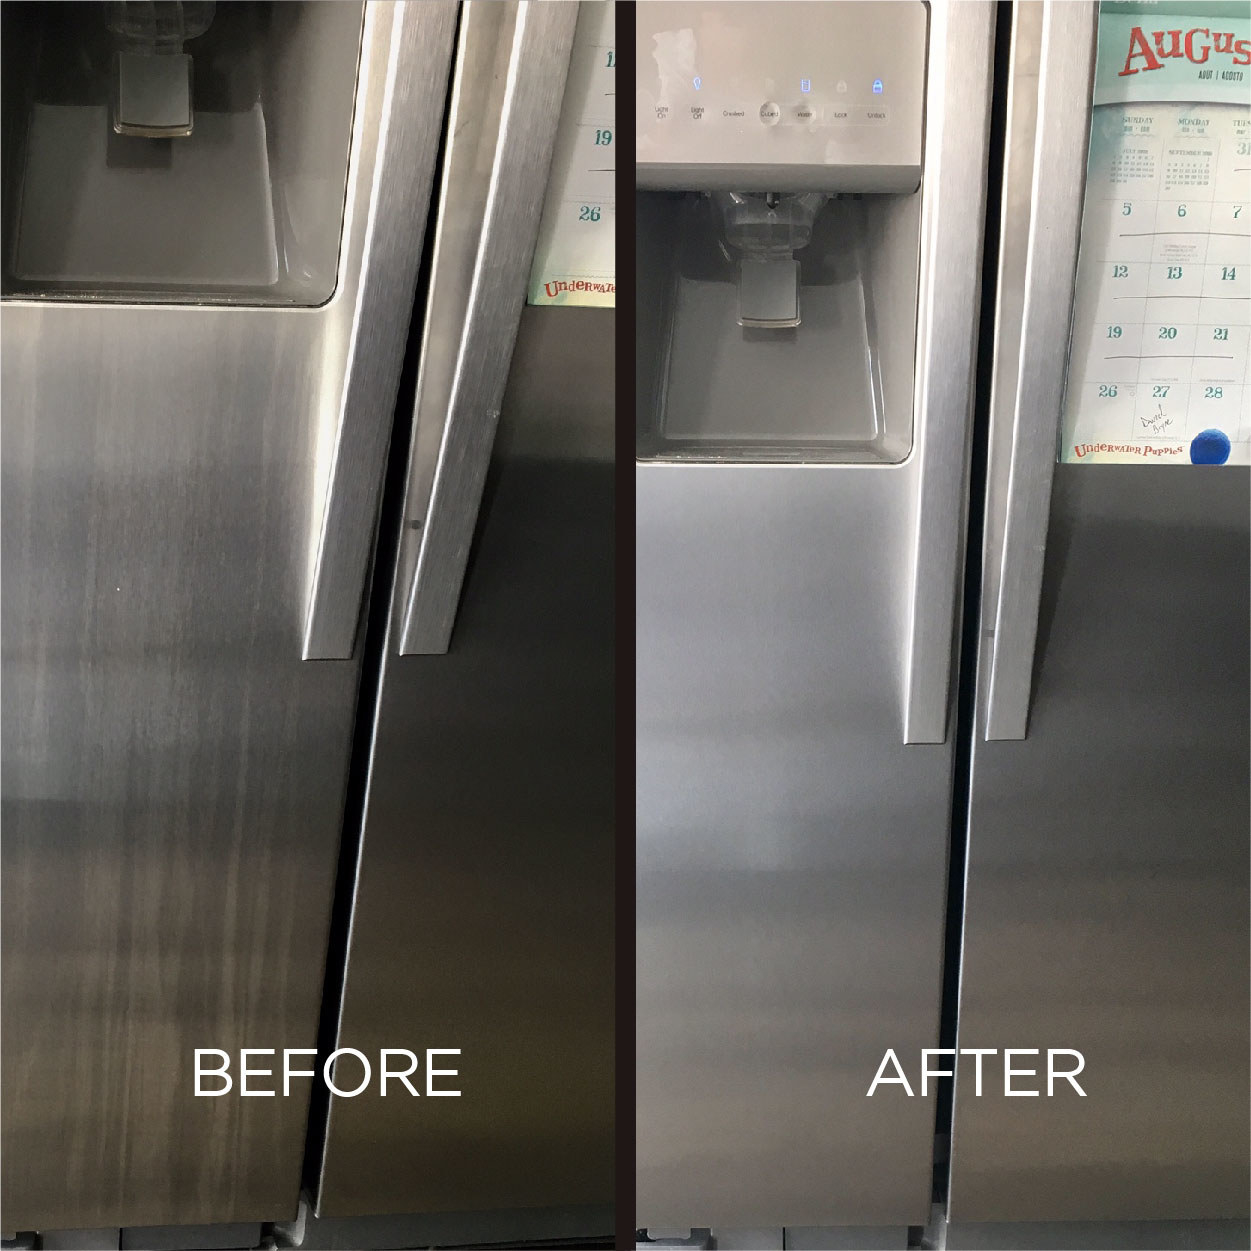 A before image of a streaky fridge and an image of the same fridge after using Weiman stainless steel wipes